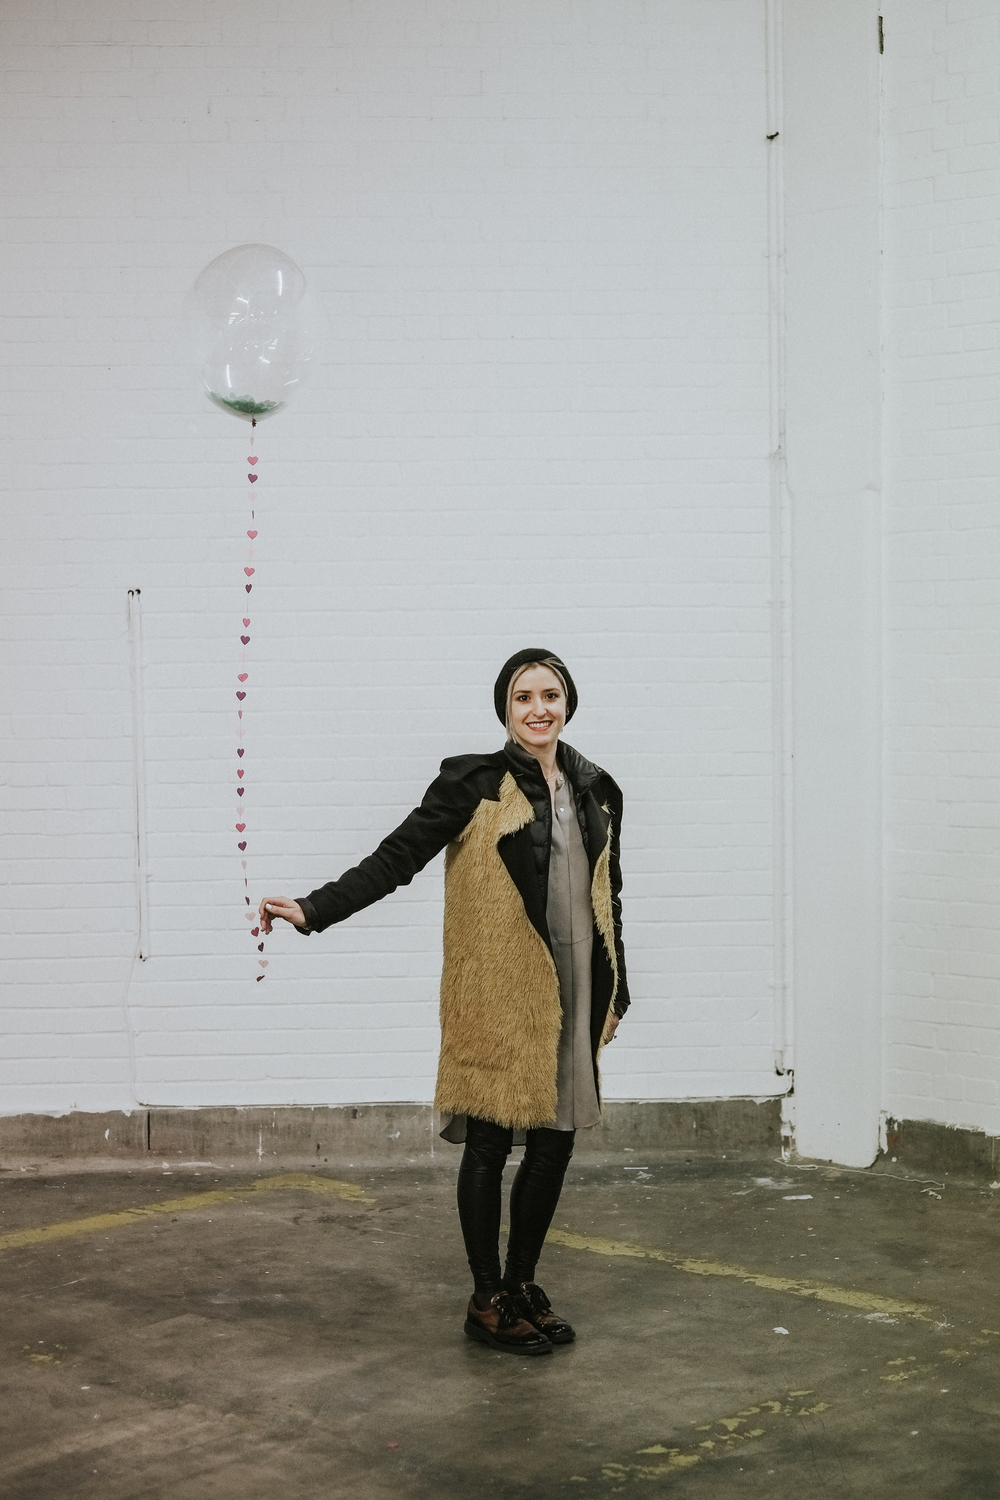 Here's  Dana Dallal Bridal  with a pretty  Pop Pop Papier  balloon that is almost bigger than her. Dana was one of my stand neighbours during the show. Her work is incredible and she is a beautiful person inside and out. I can't wait for her to come up to visit us in Leeds.